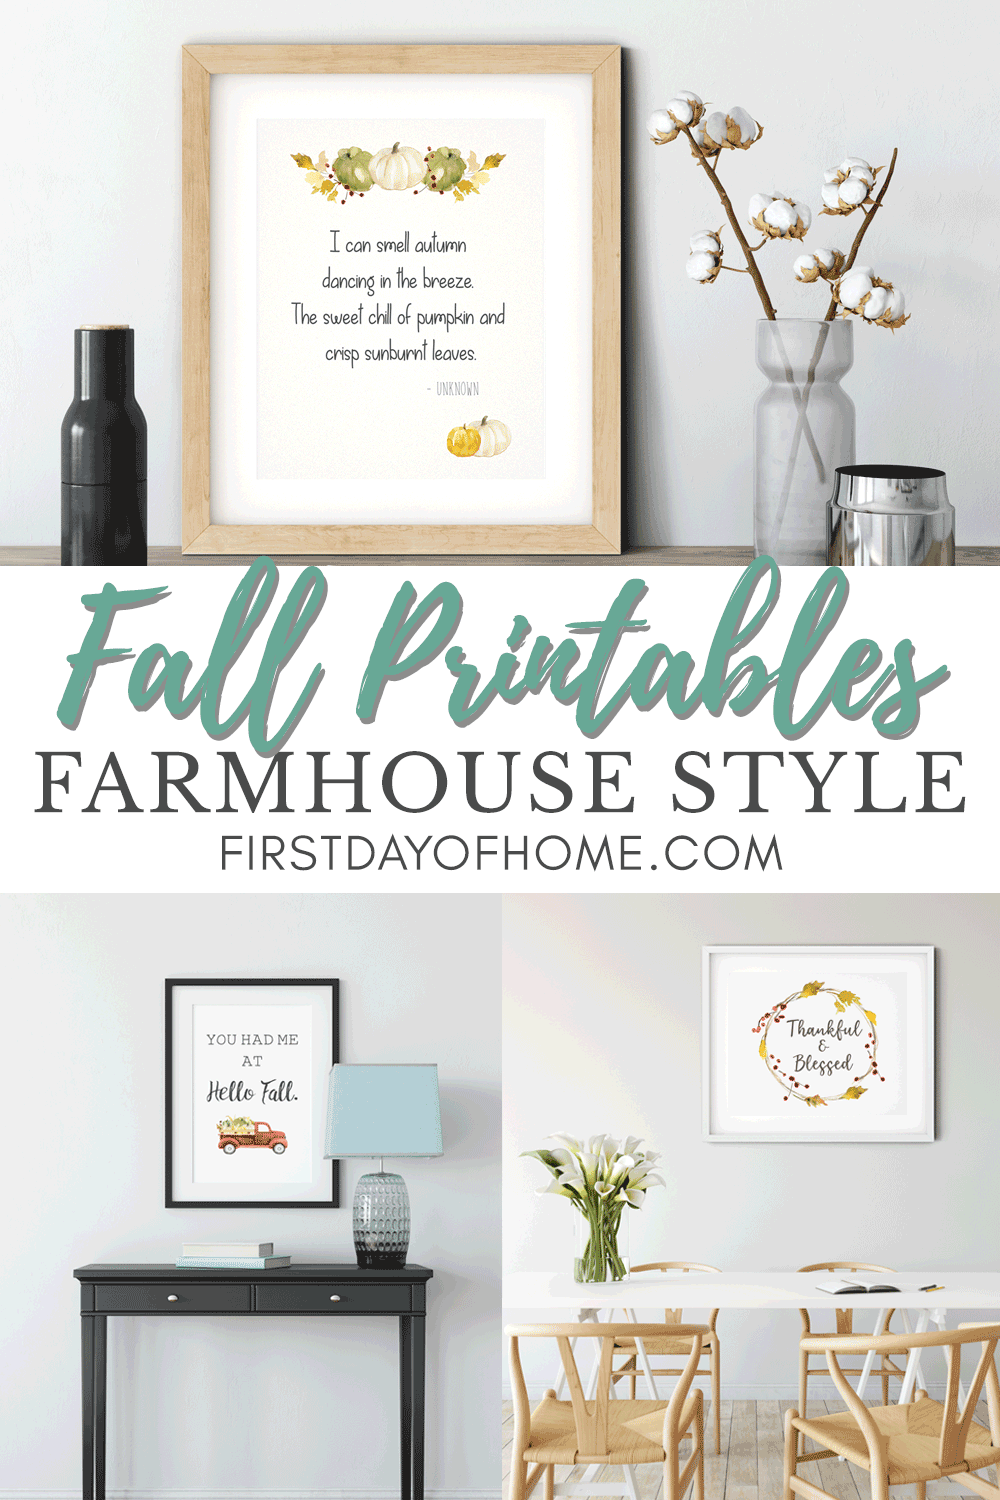 FREE fall printables to decorate the home for fall